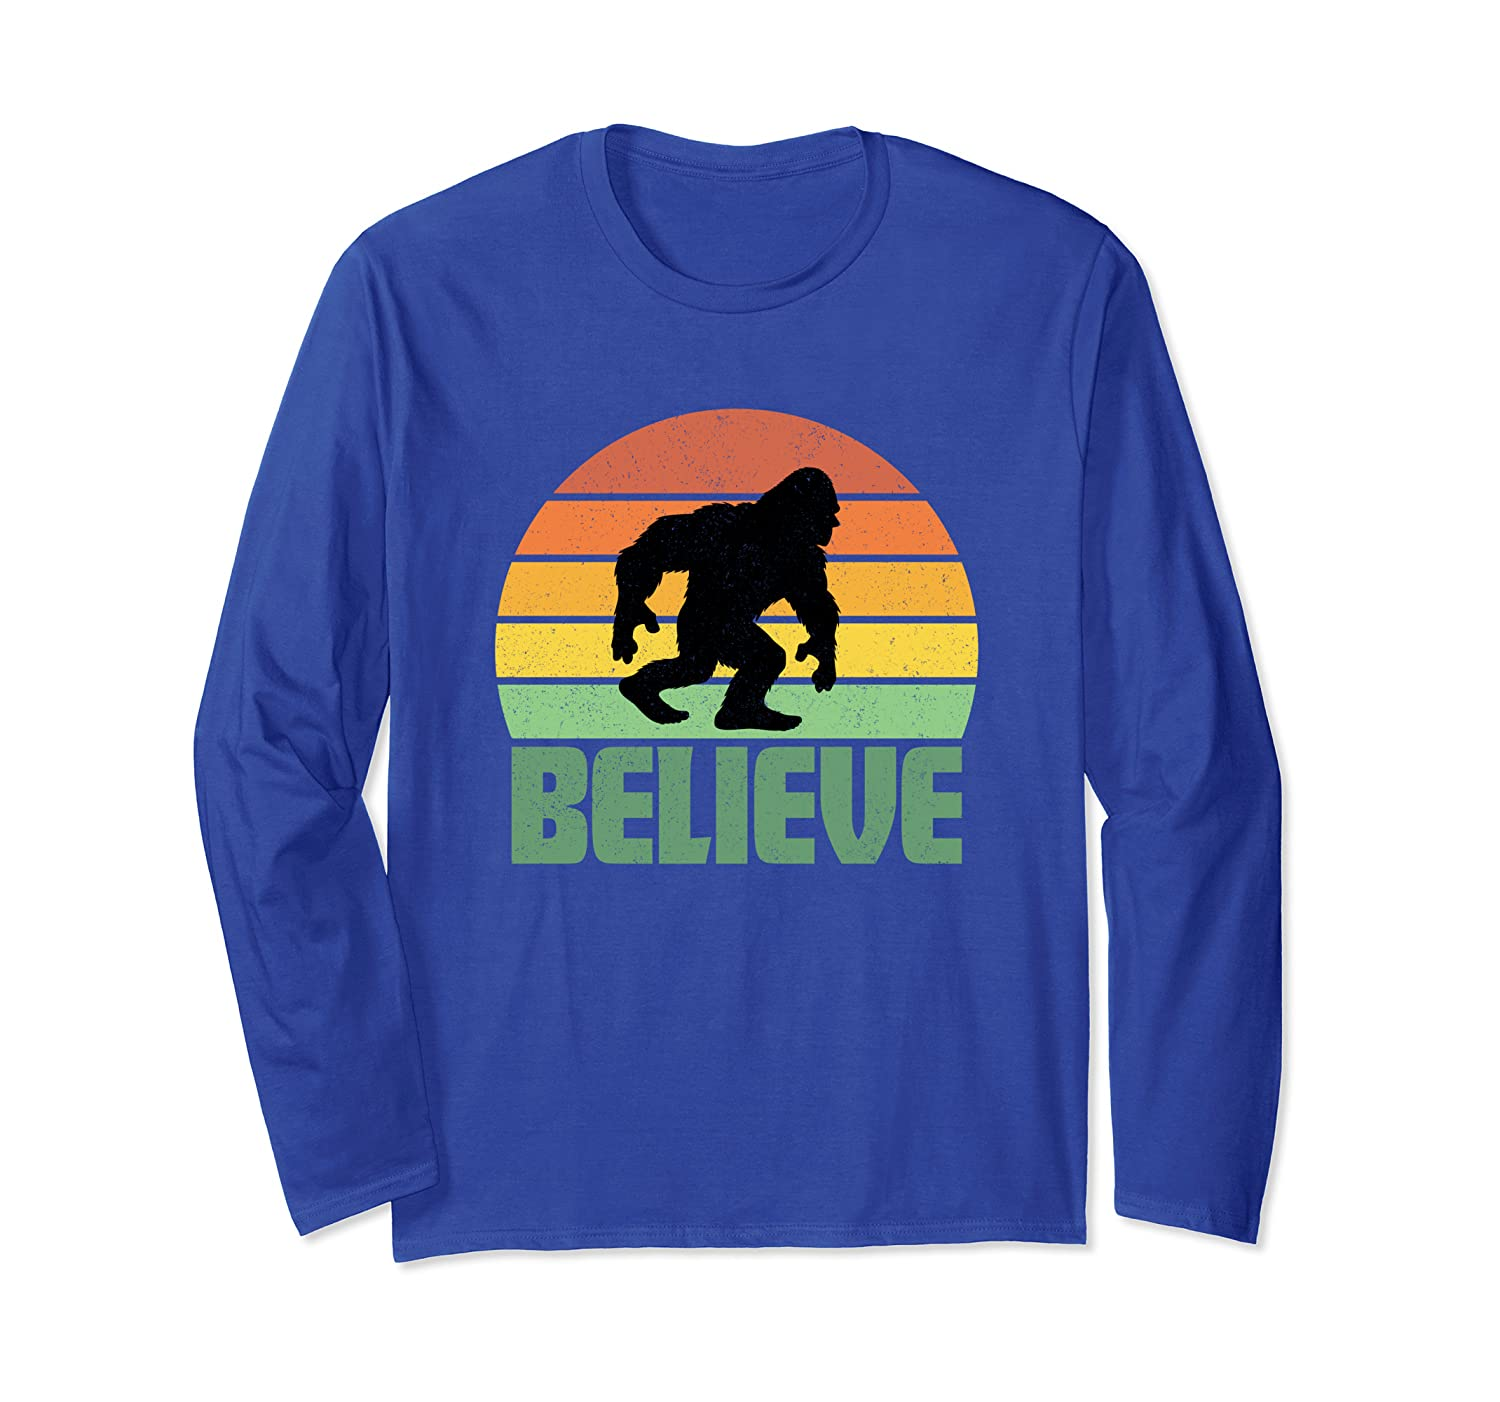 Believe Bigfoot Yeti Funny Retro Sunset Gift Party Present Long Sleeve T-Shirt